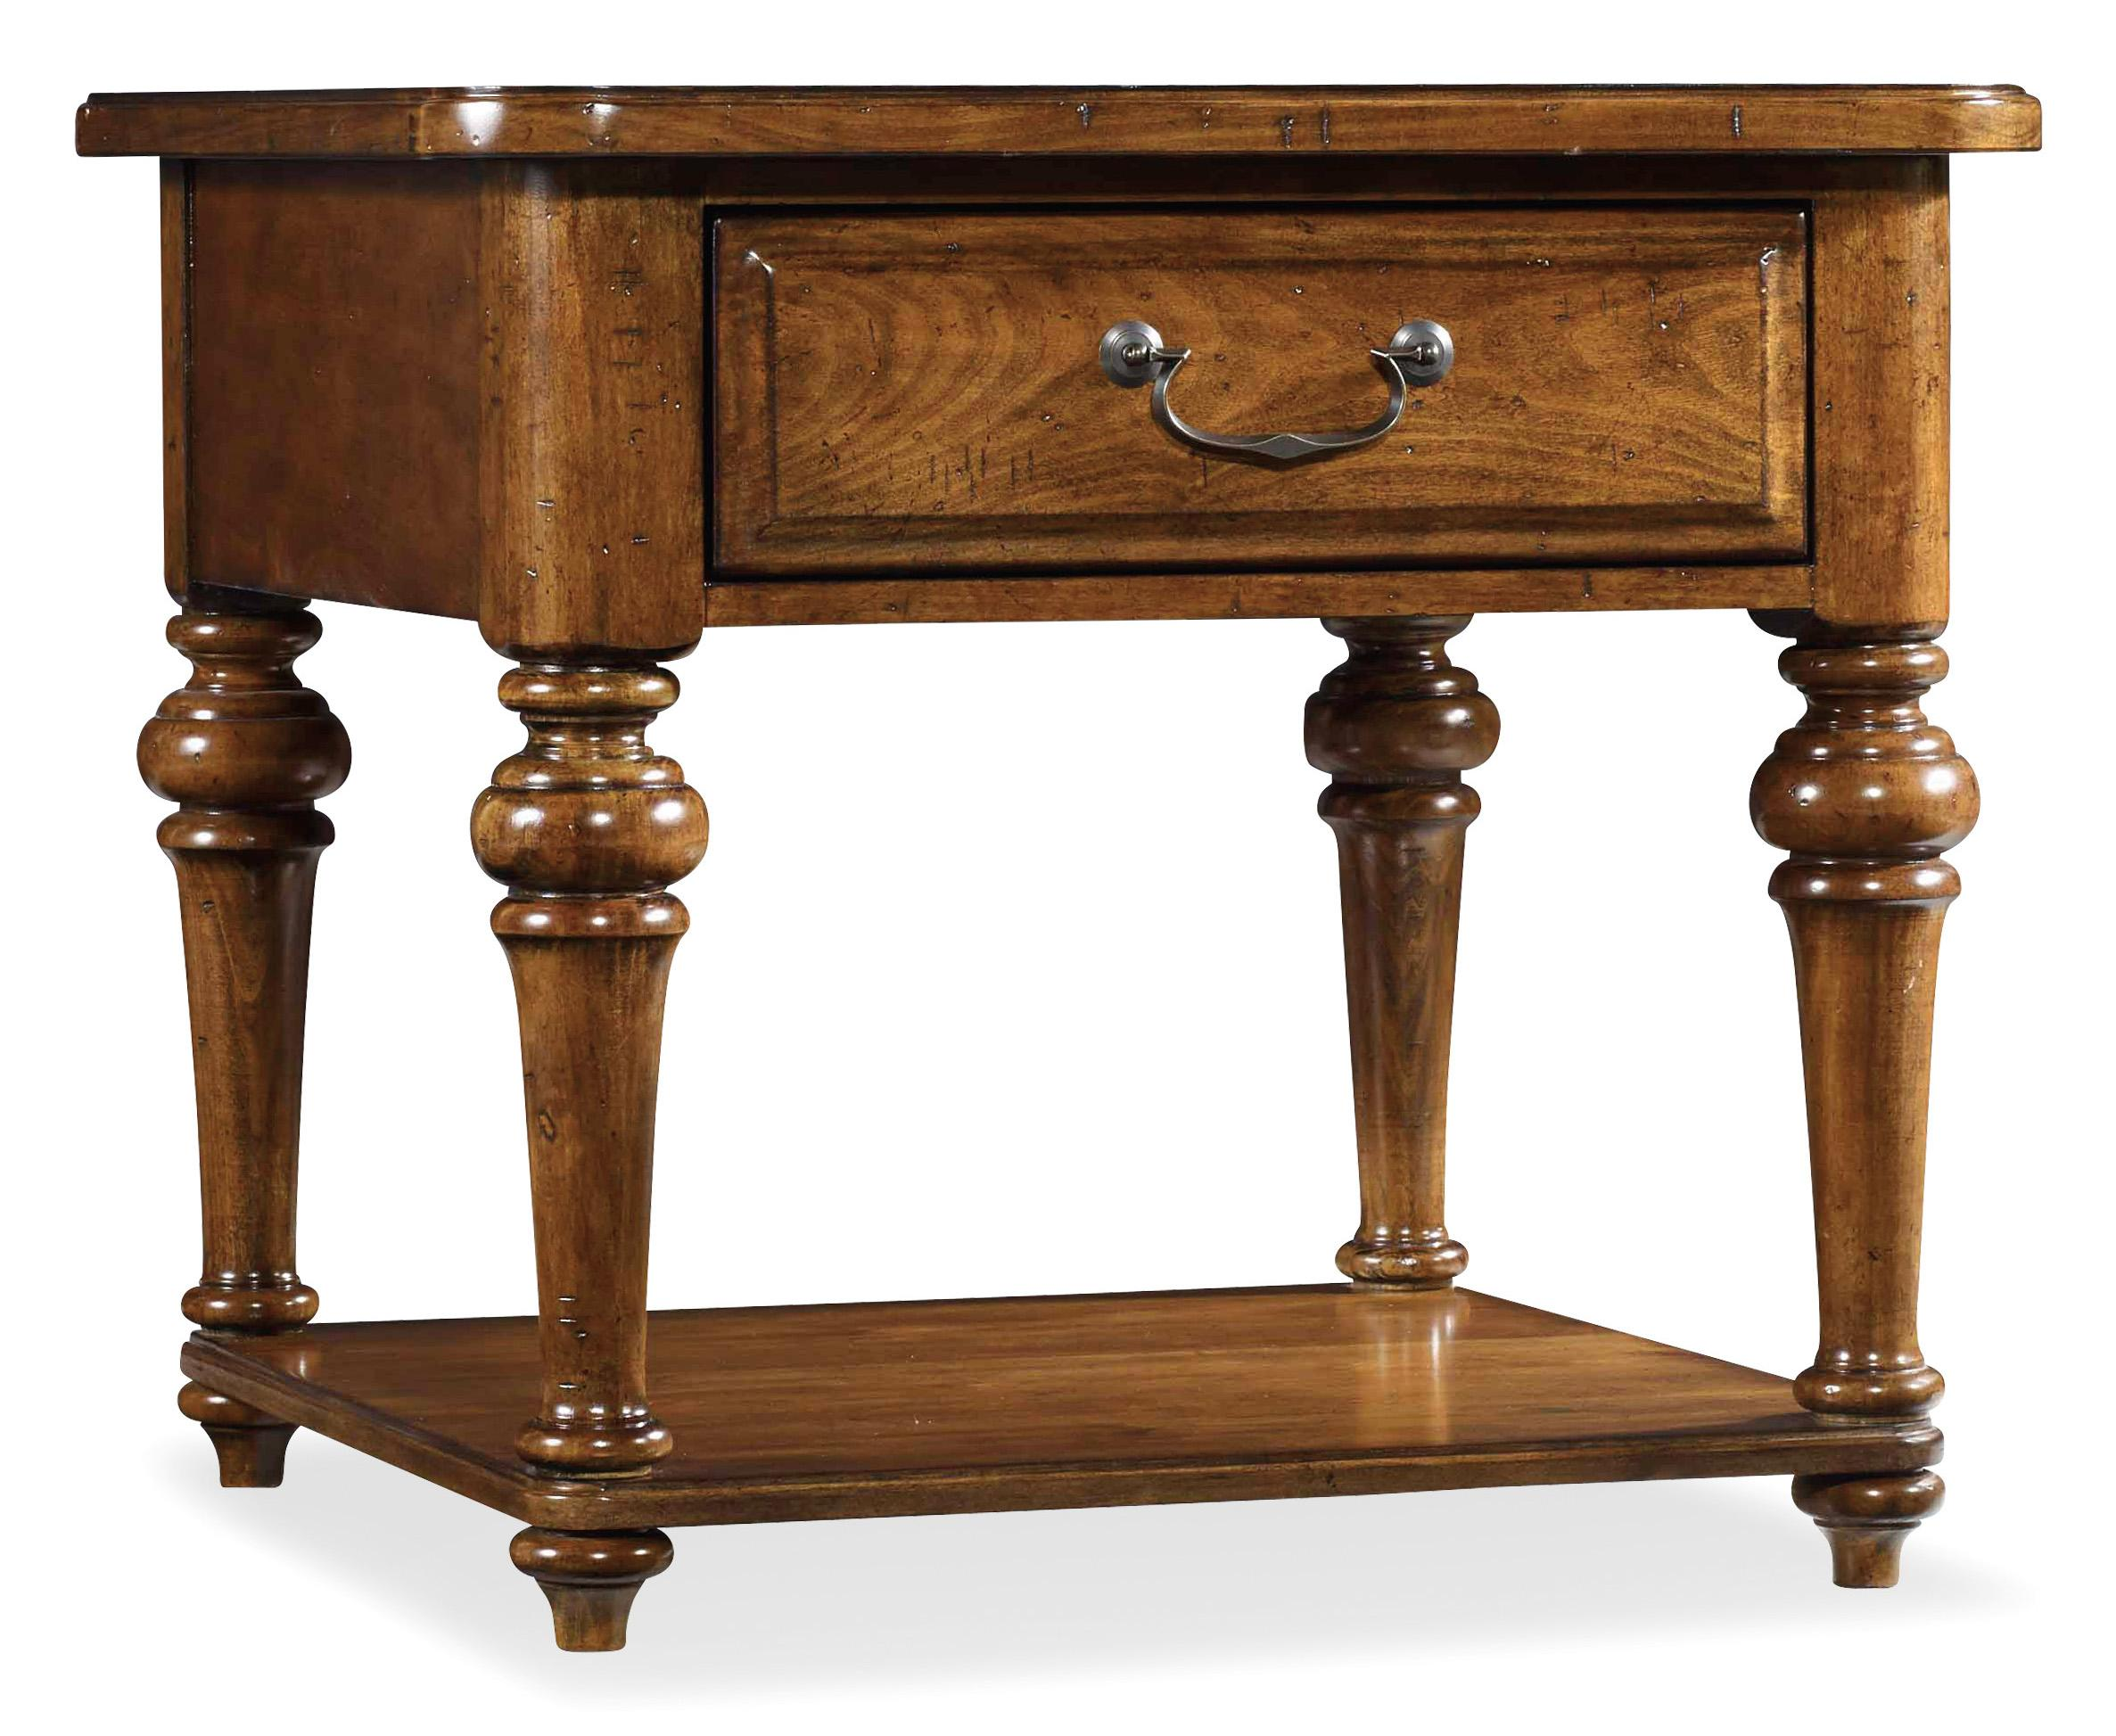 Tynecastle Lamp Table by Hooker Furniture at Upper Room Home Furnishings